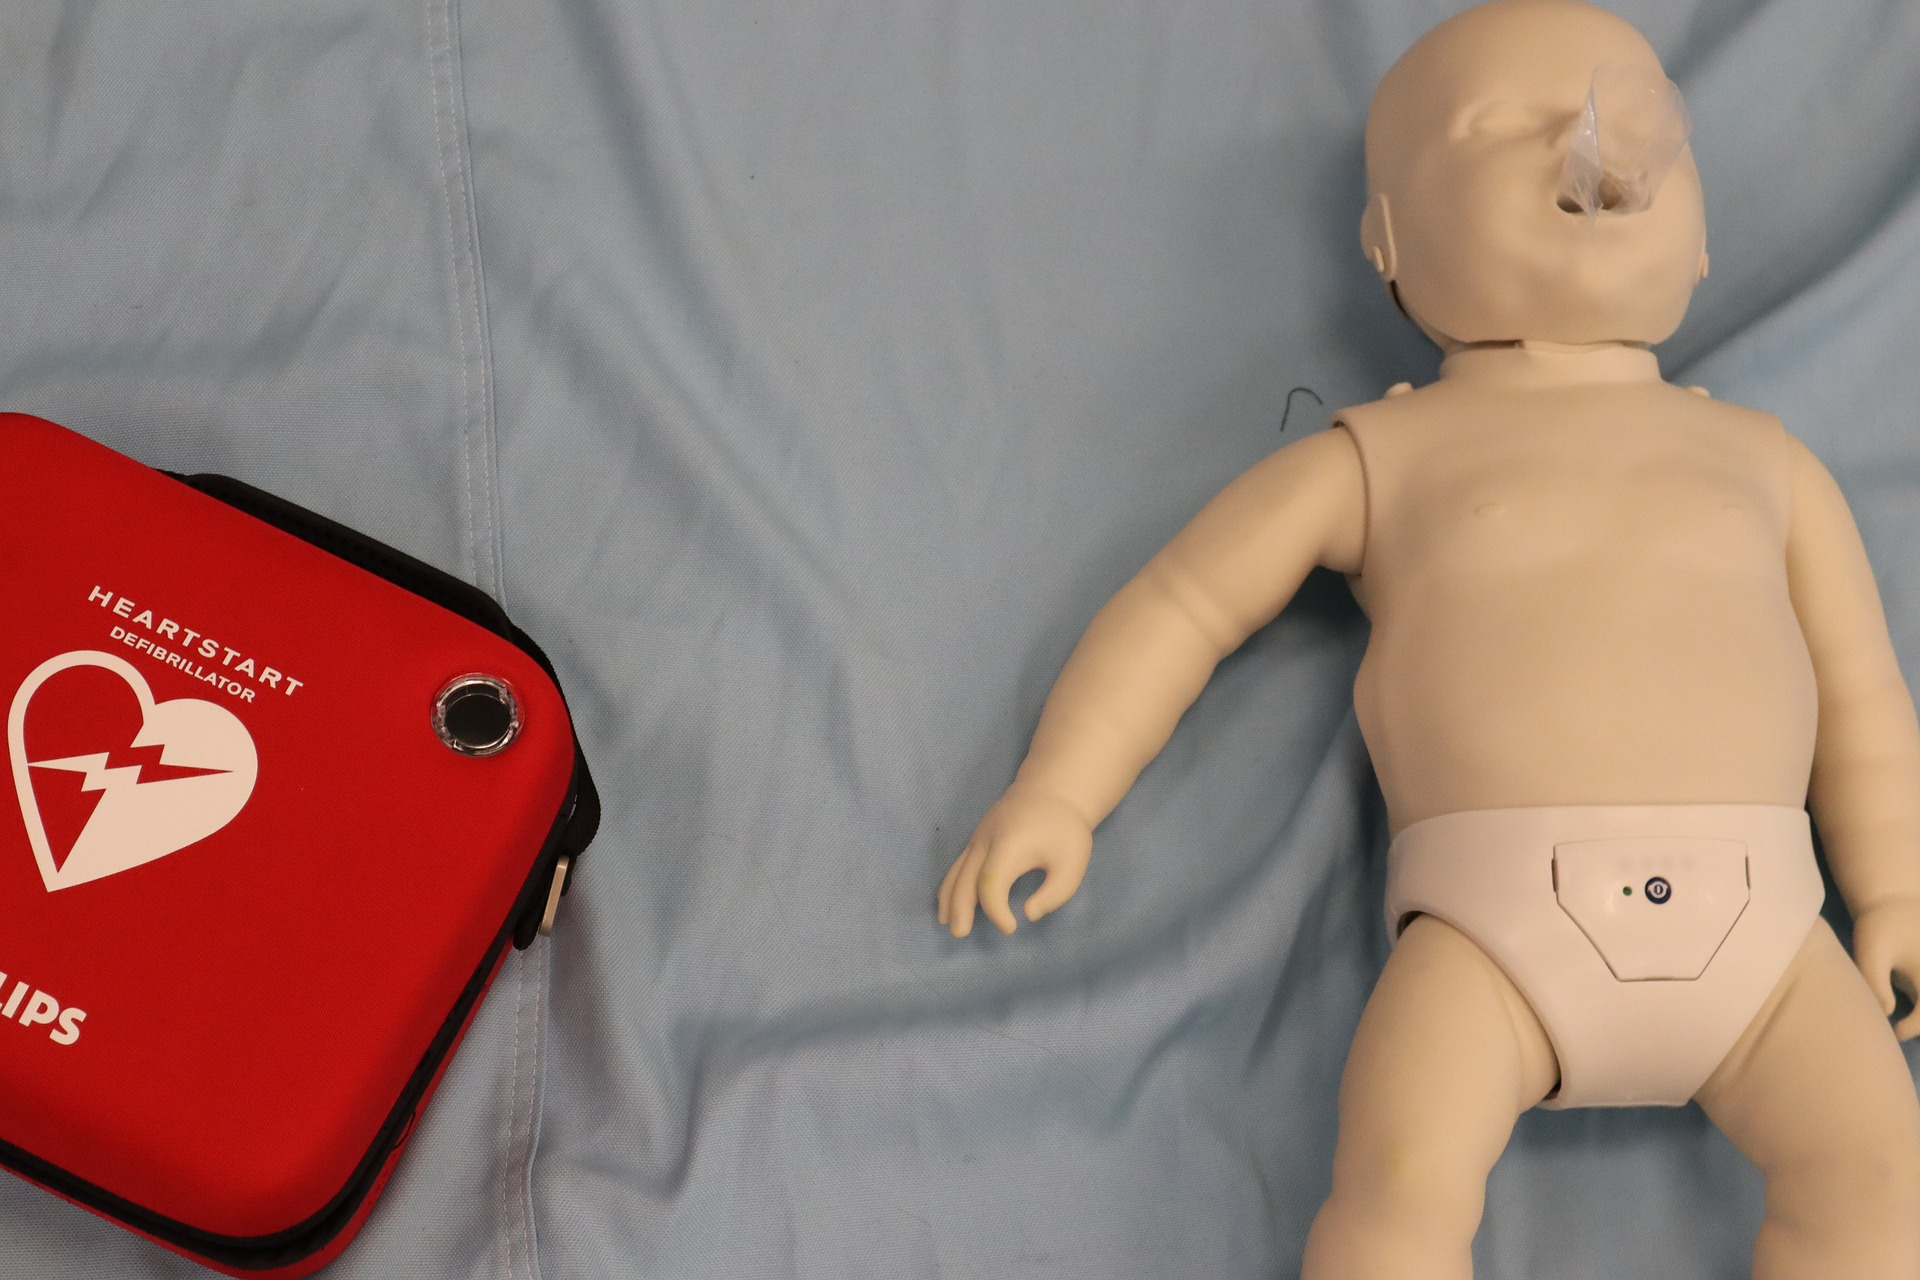 Mouth-To-Mouth Bystander CPR Preferable Method for Pediatric Cardiac Arrest